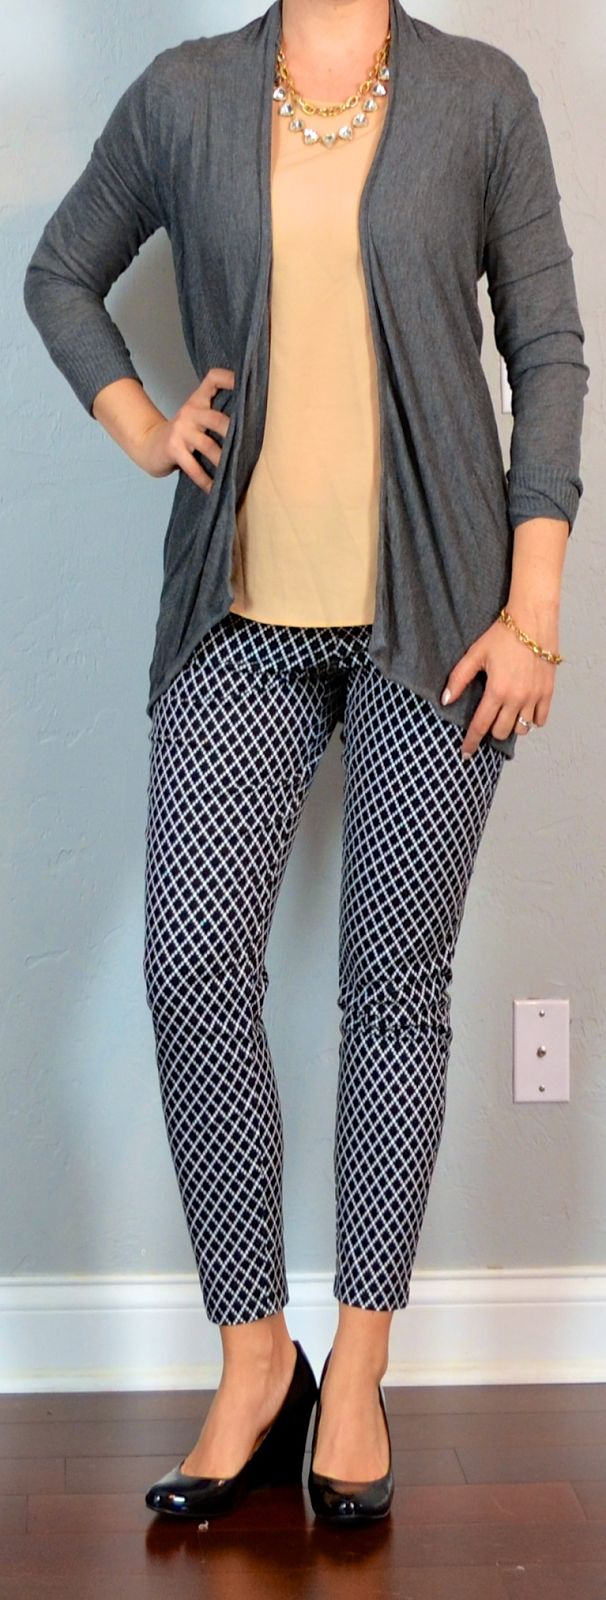 outfit post: pattern skinny pants, nude blouse, grey cardigan, black wedges | Outfit Posts